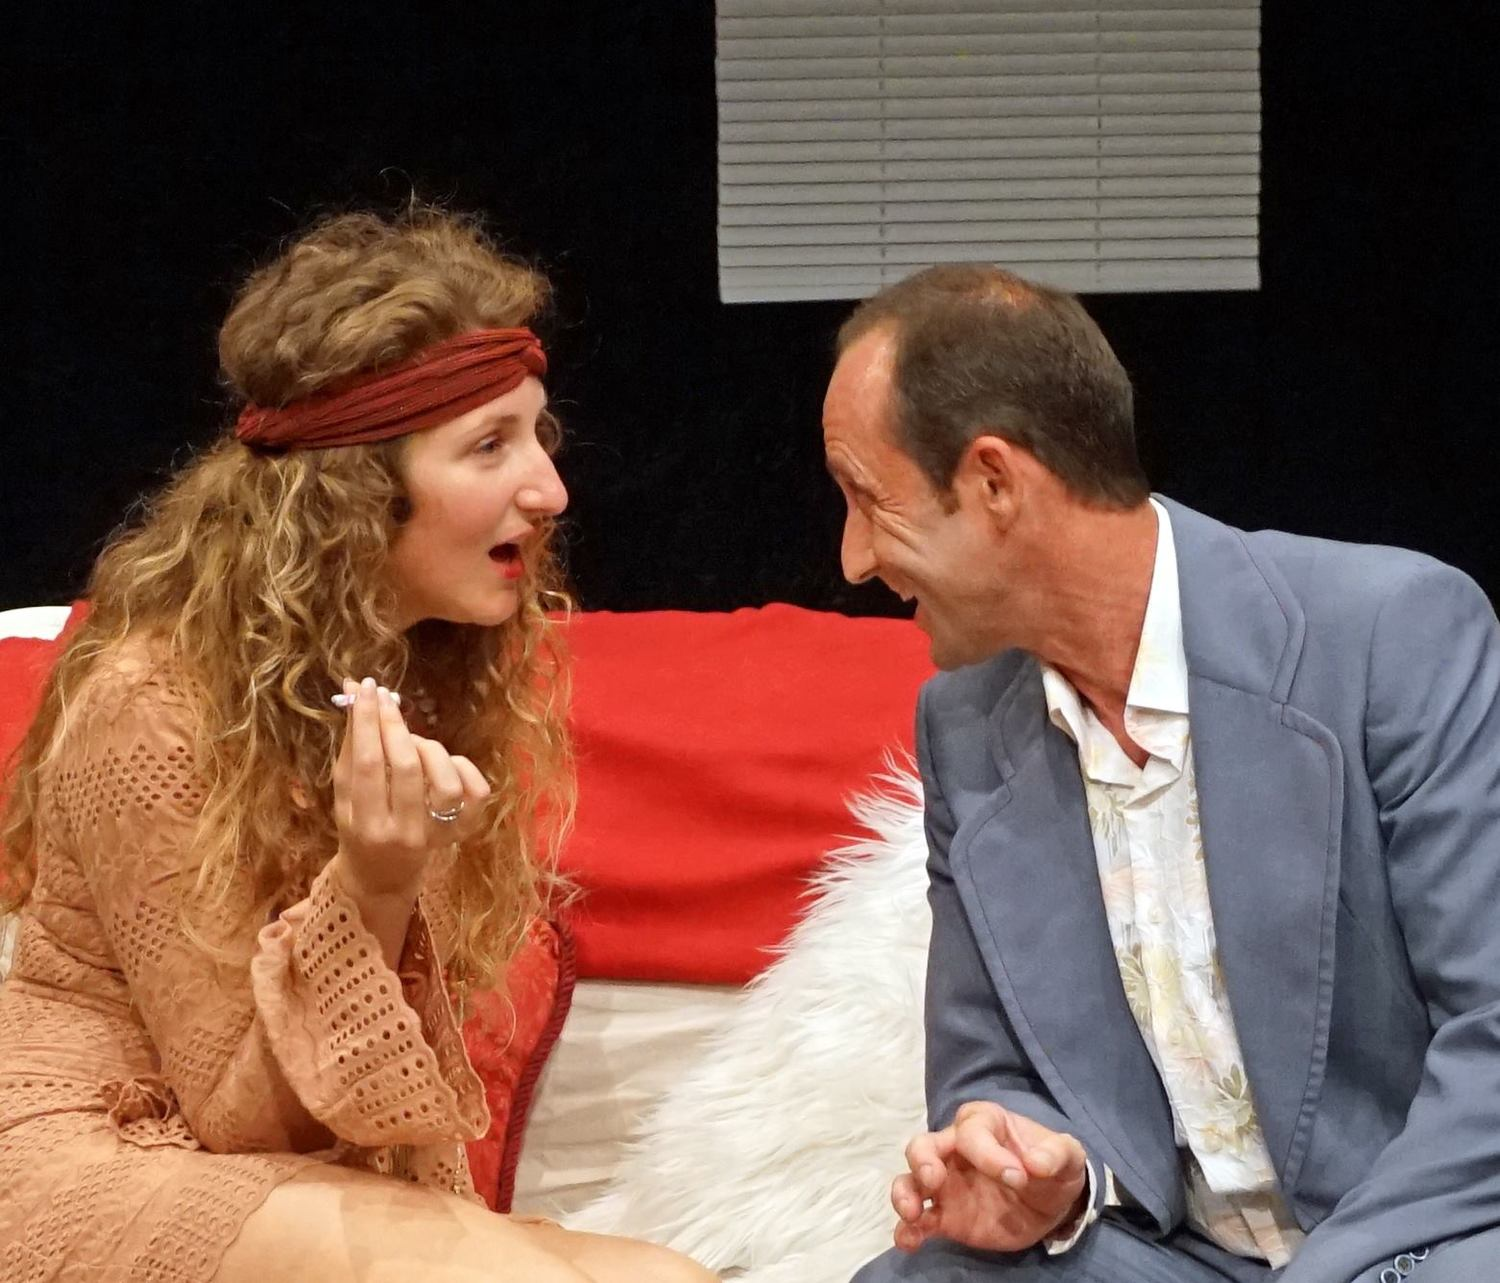 BWW Review: THE LAST OF THE RED HOT LOVERS at the Bakehouse Theatre